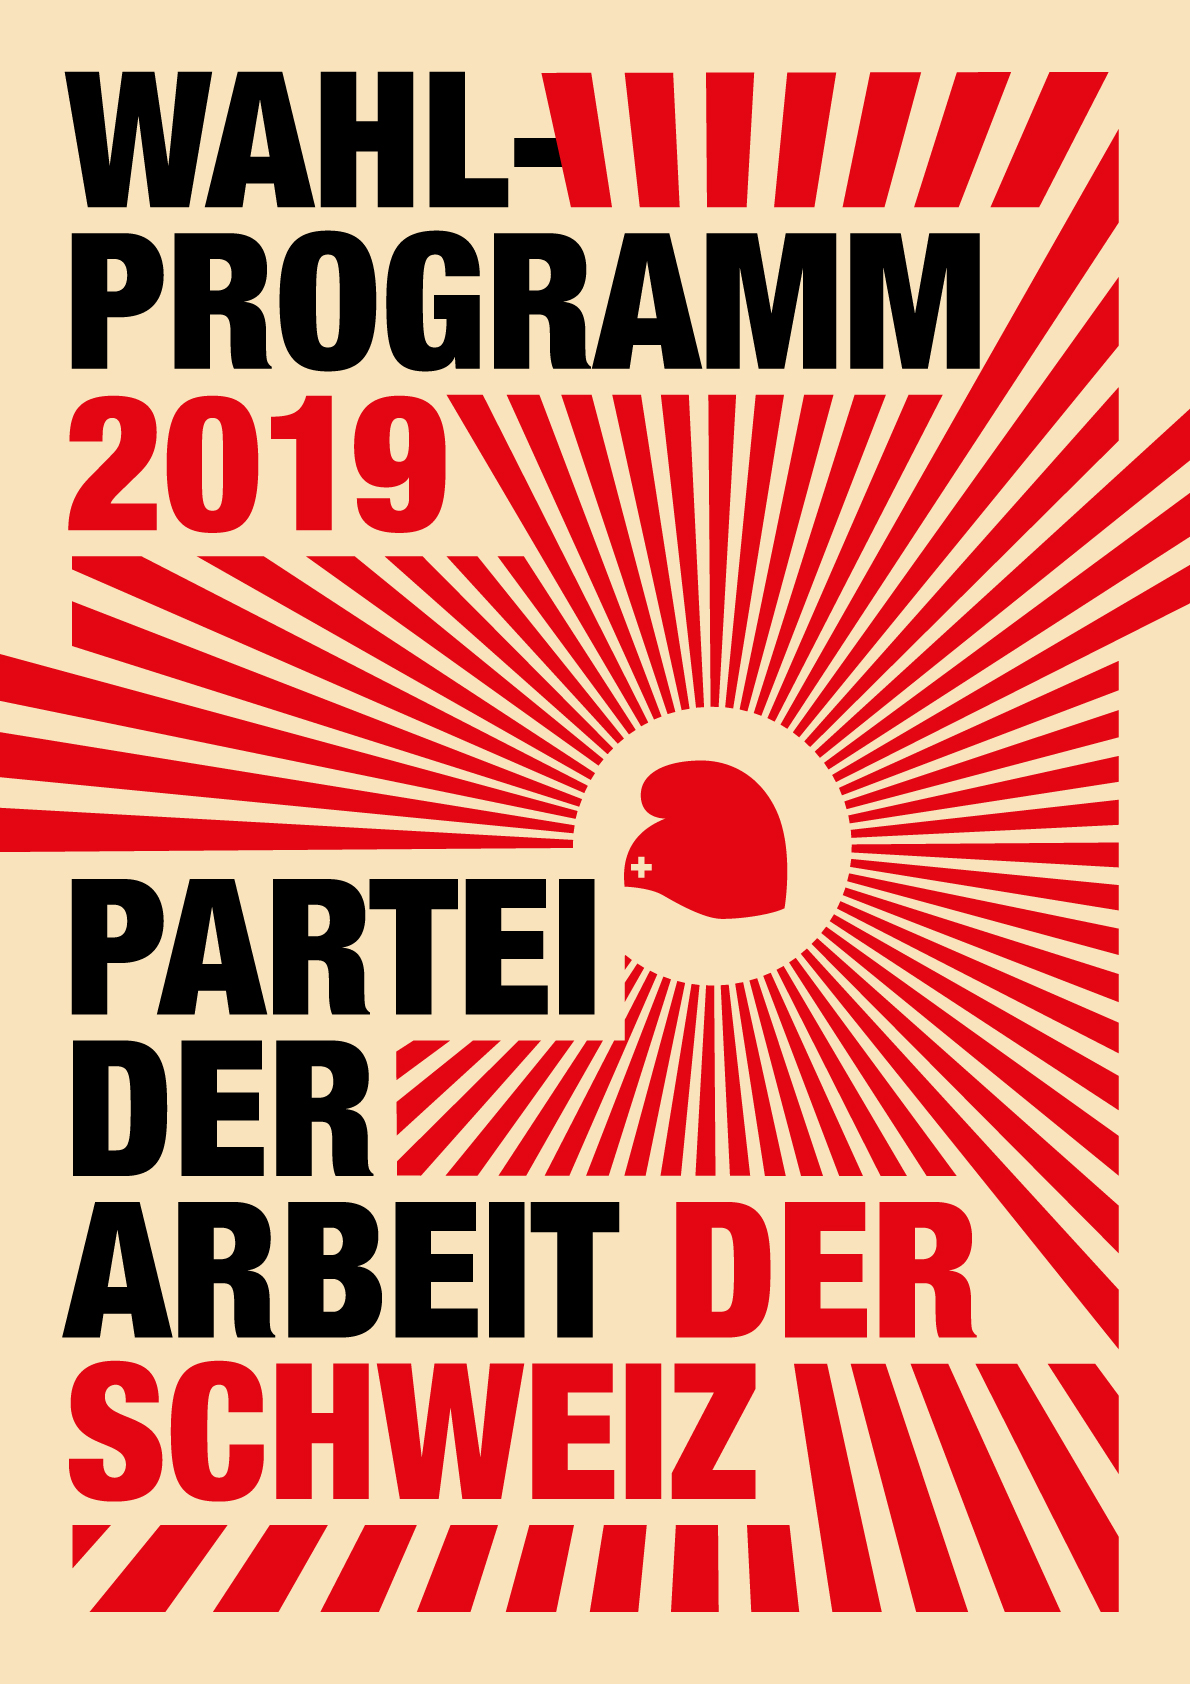 Wahlprogramm 2019